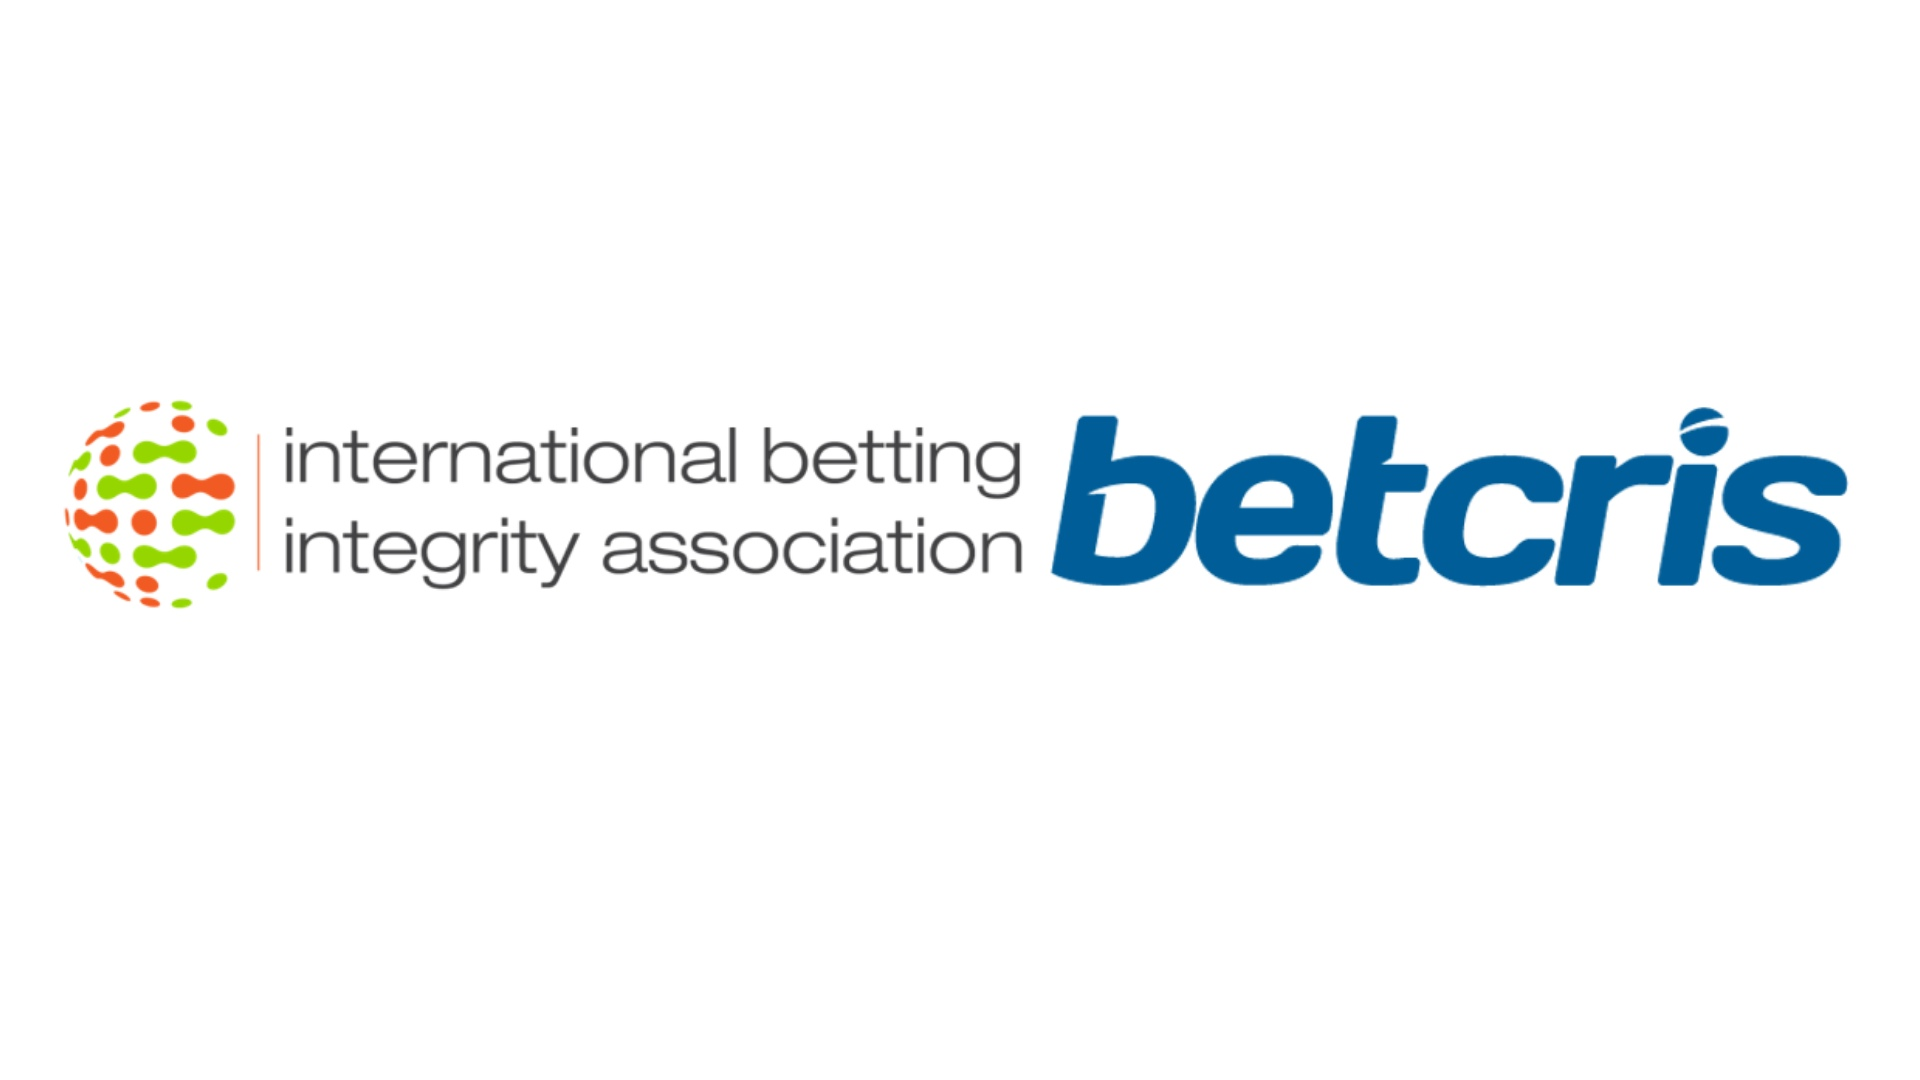 Betcris se junta à International Betting Integrity